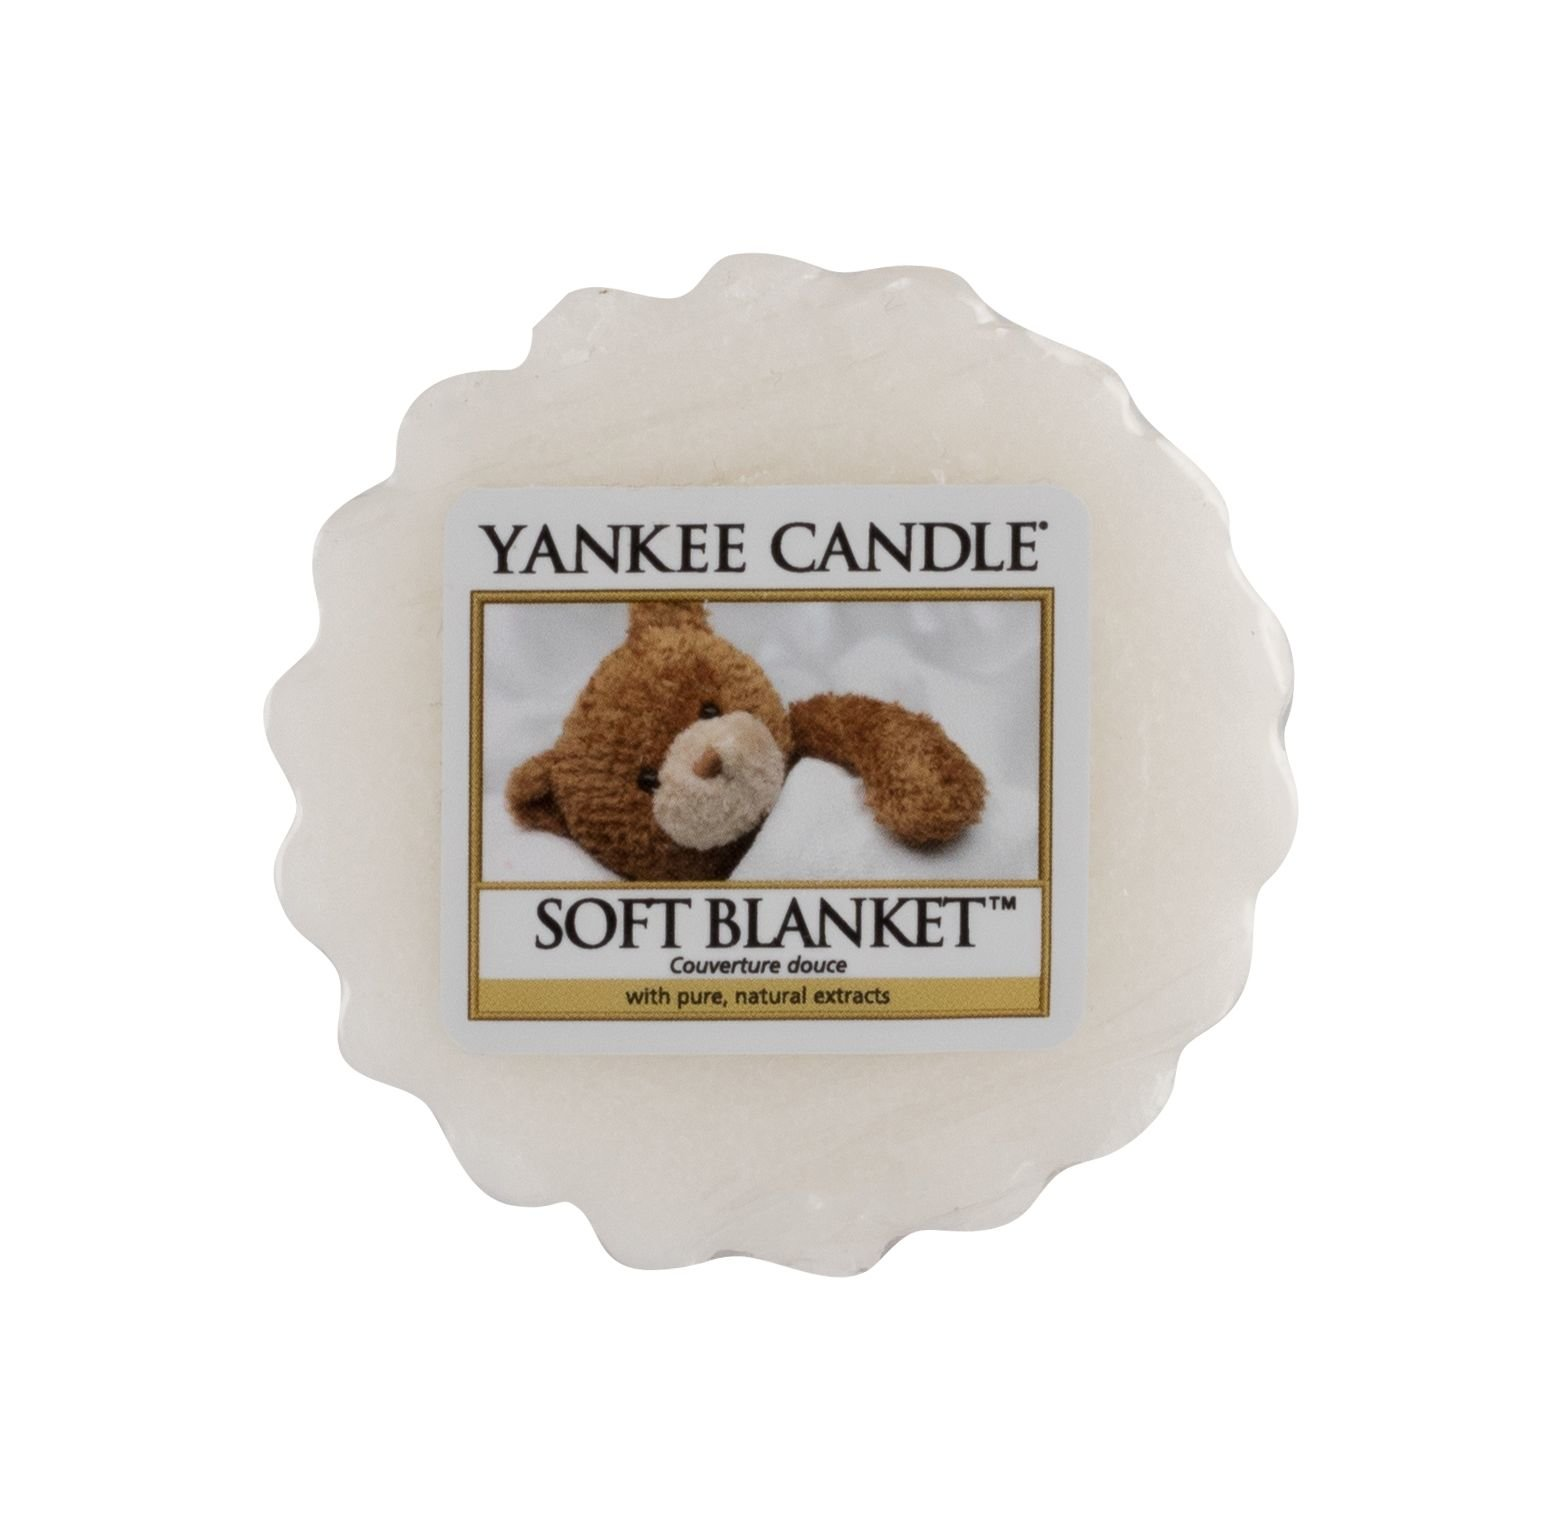 Yankee Candle Soft Blanket Scented Candle 22ml